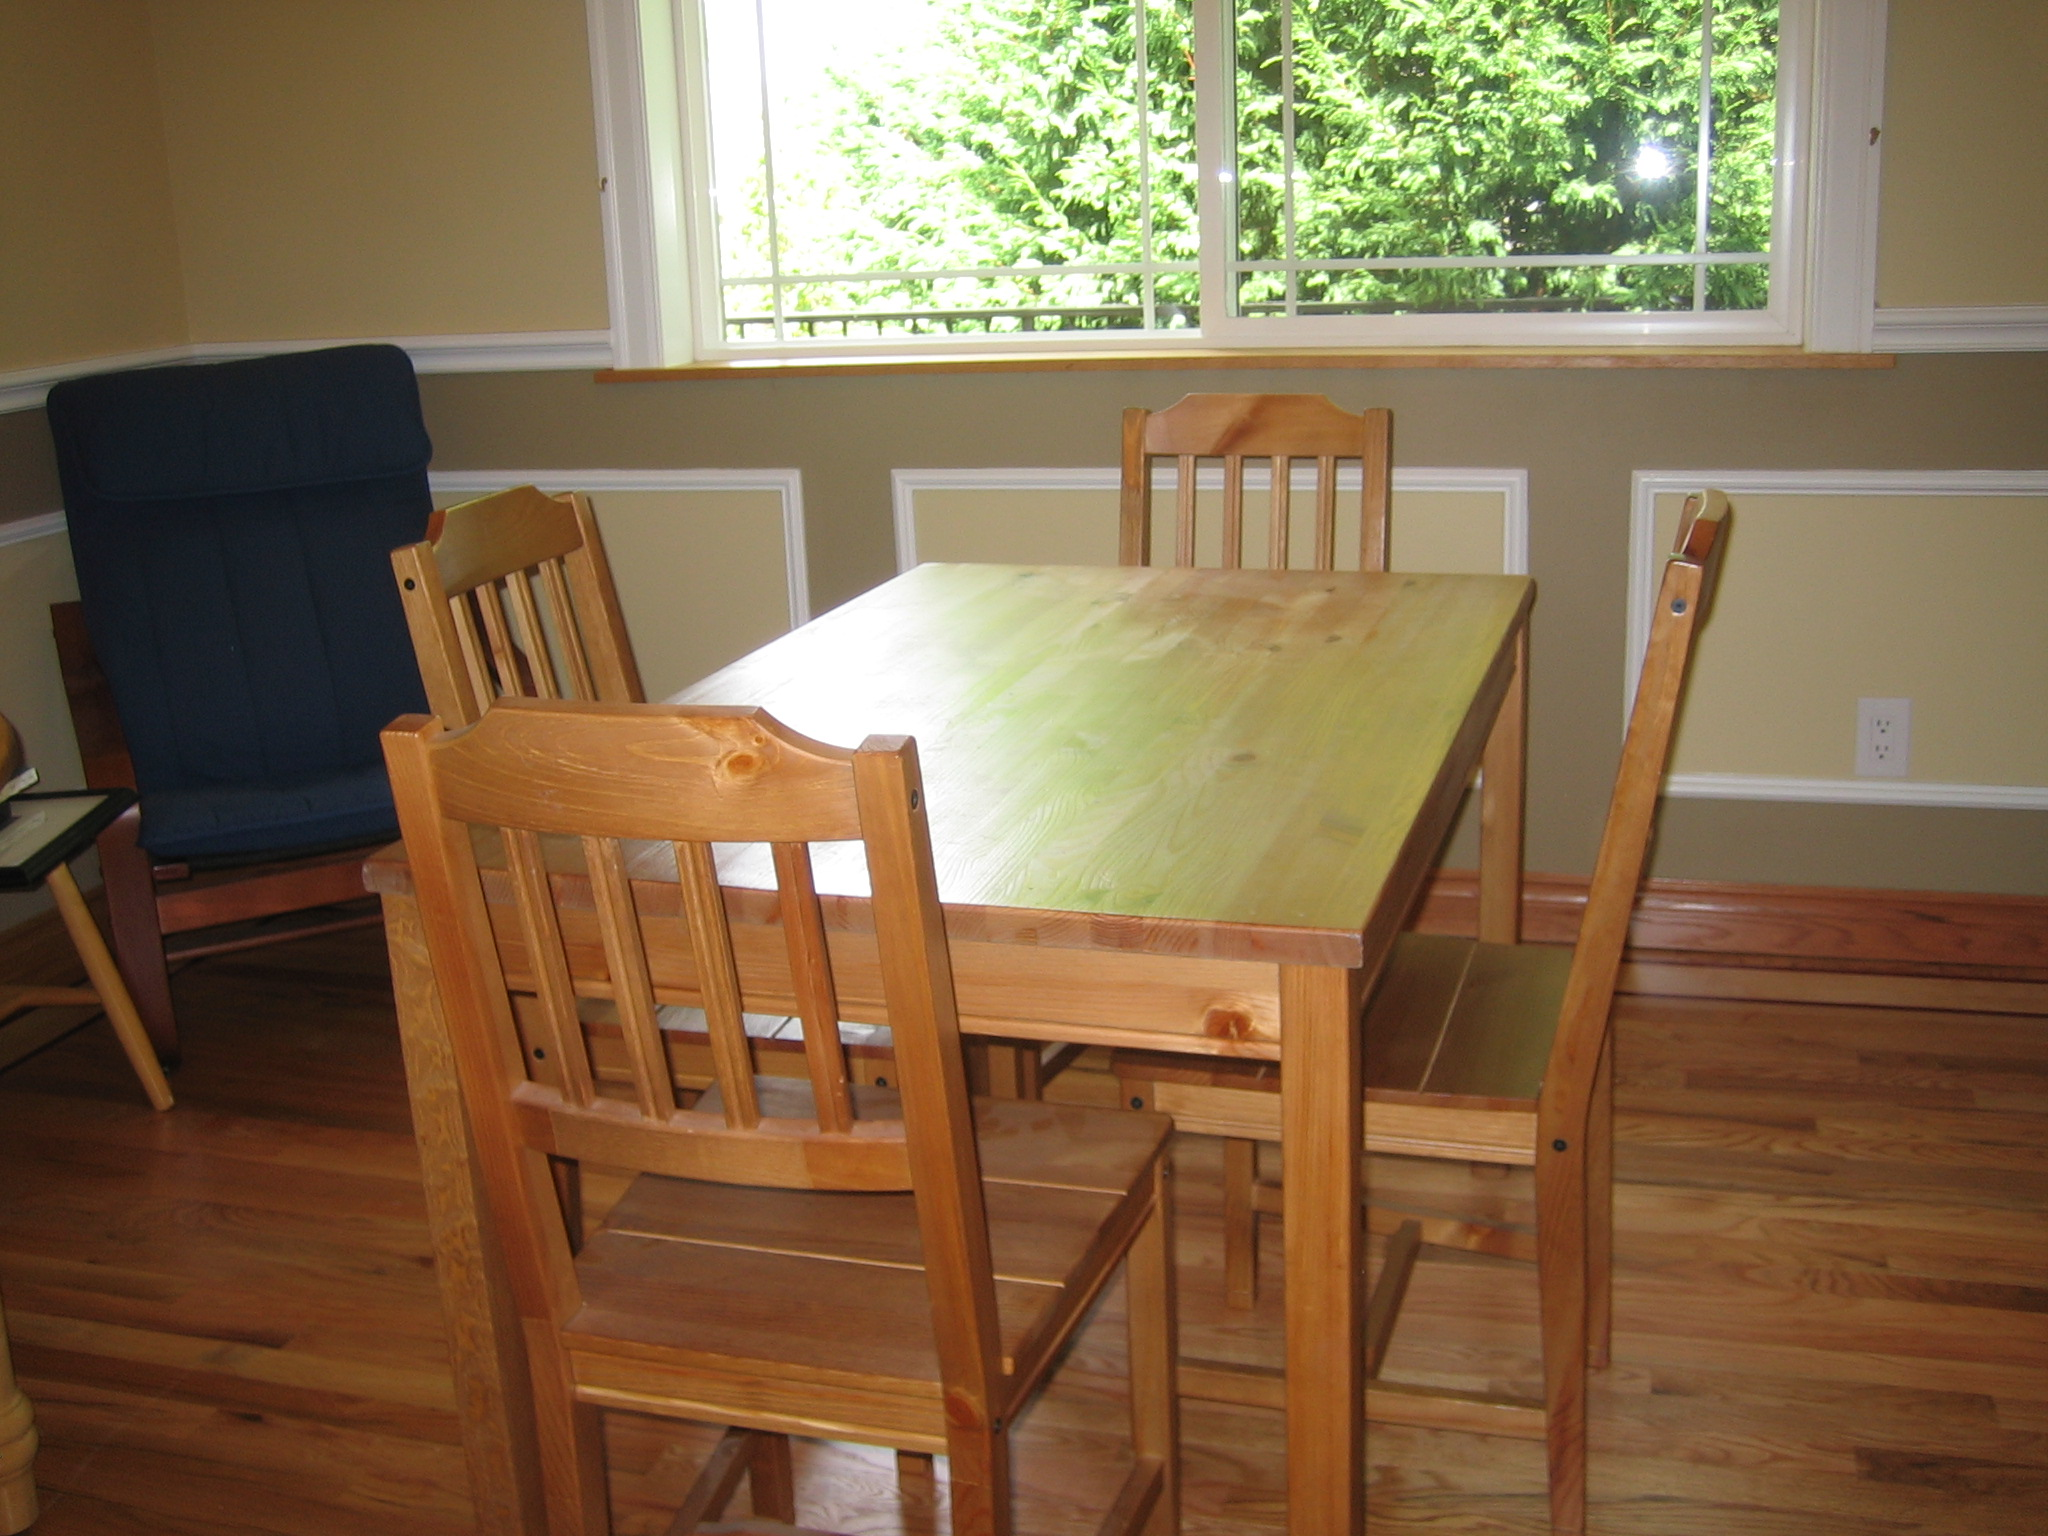 File:Kitchen Table